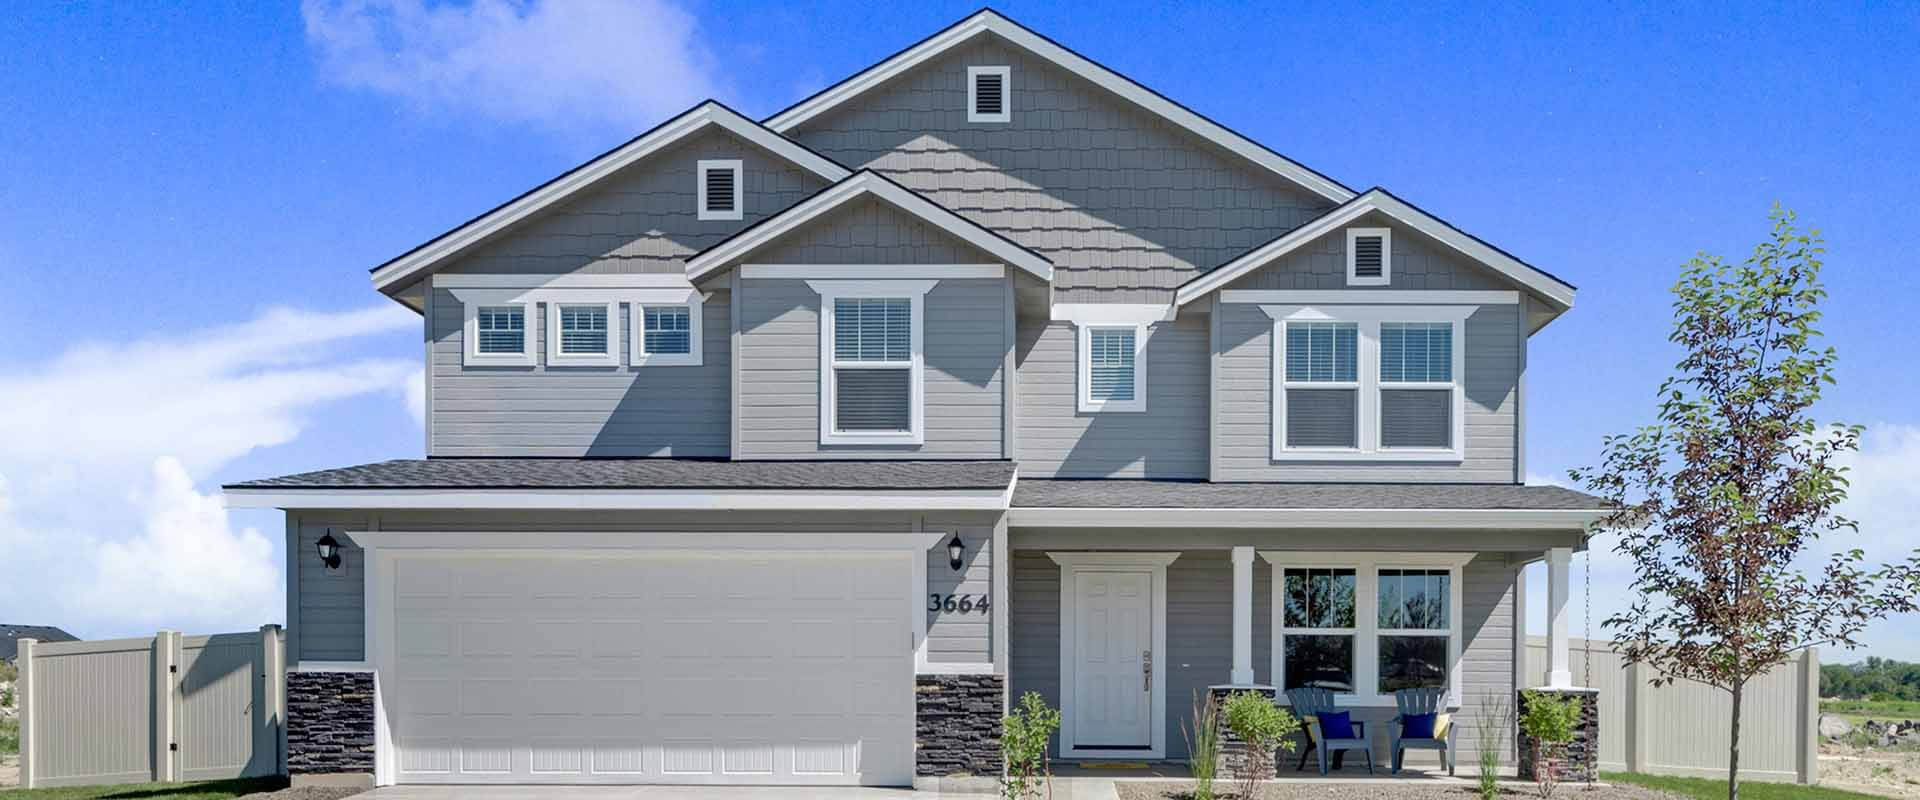 Southern Ridge-New-Homes-Nampa-Idaho.jpg